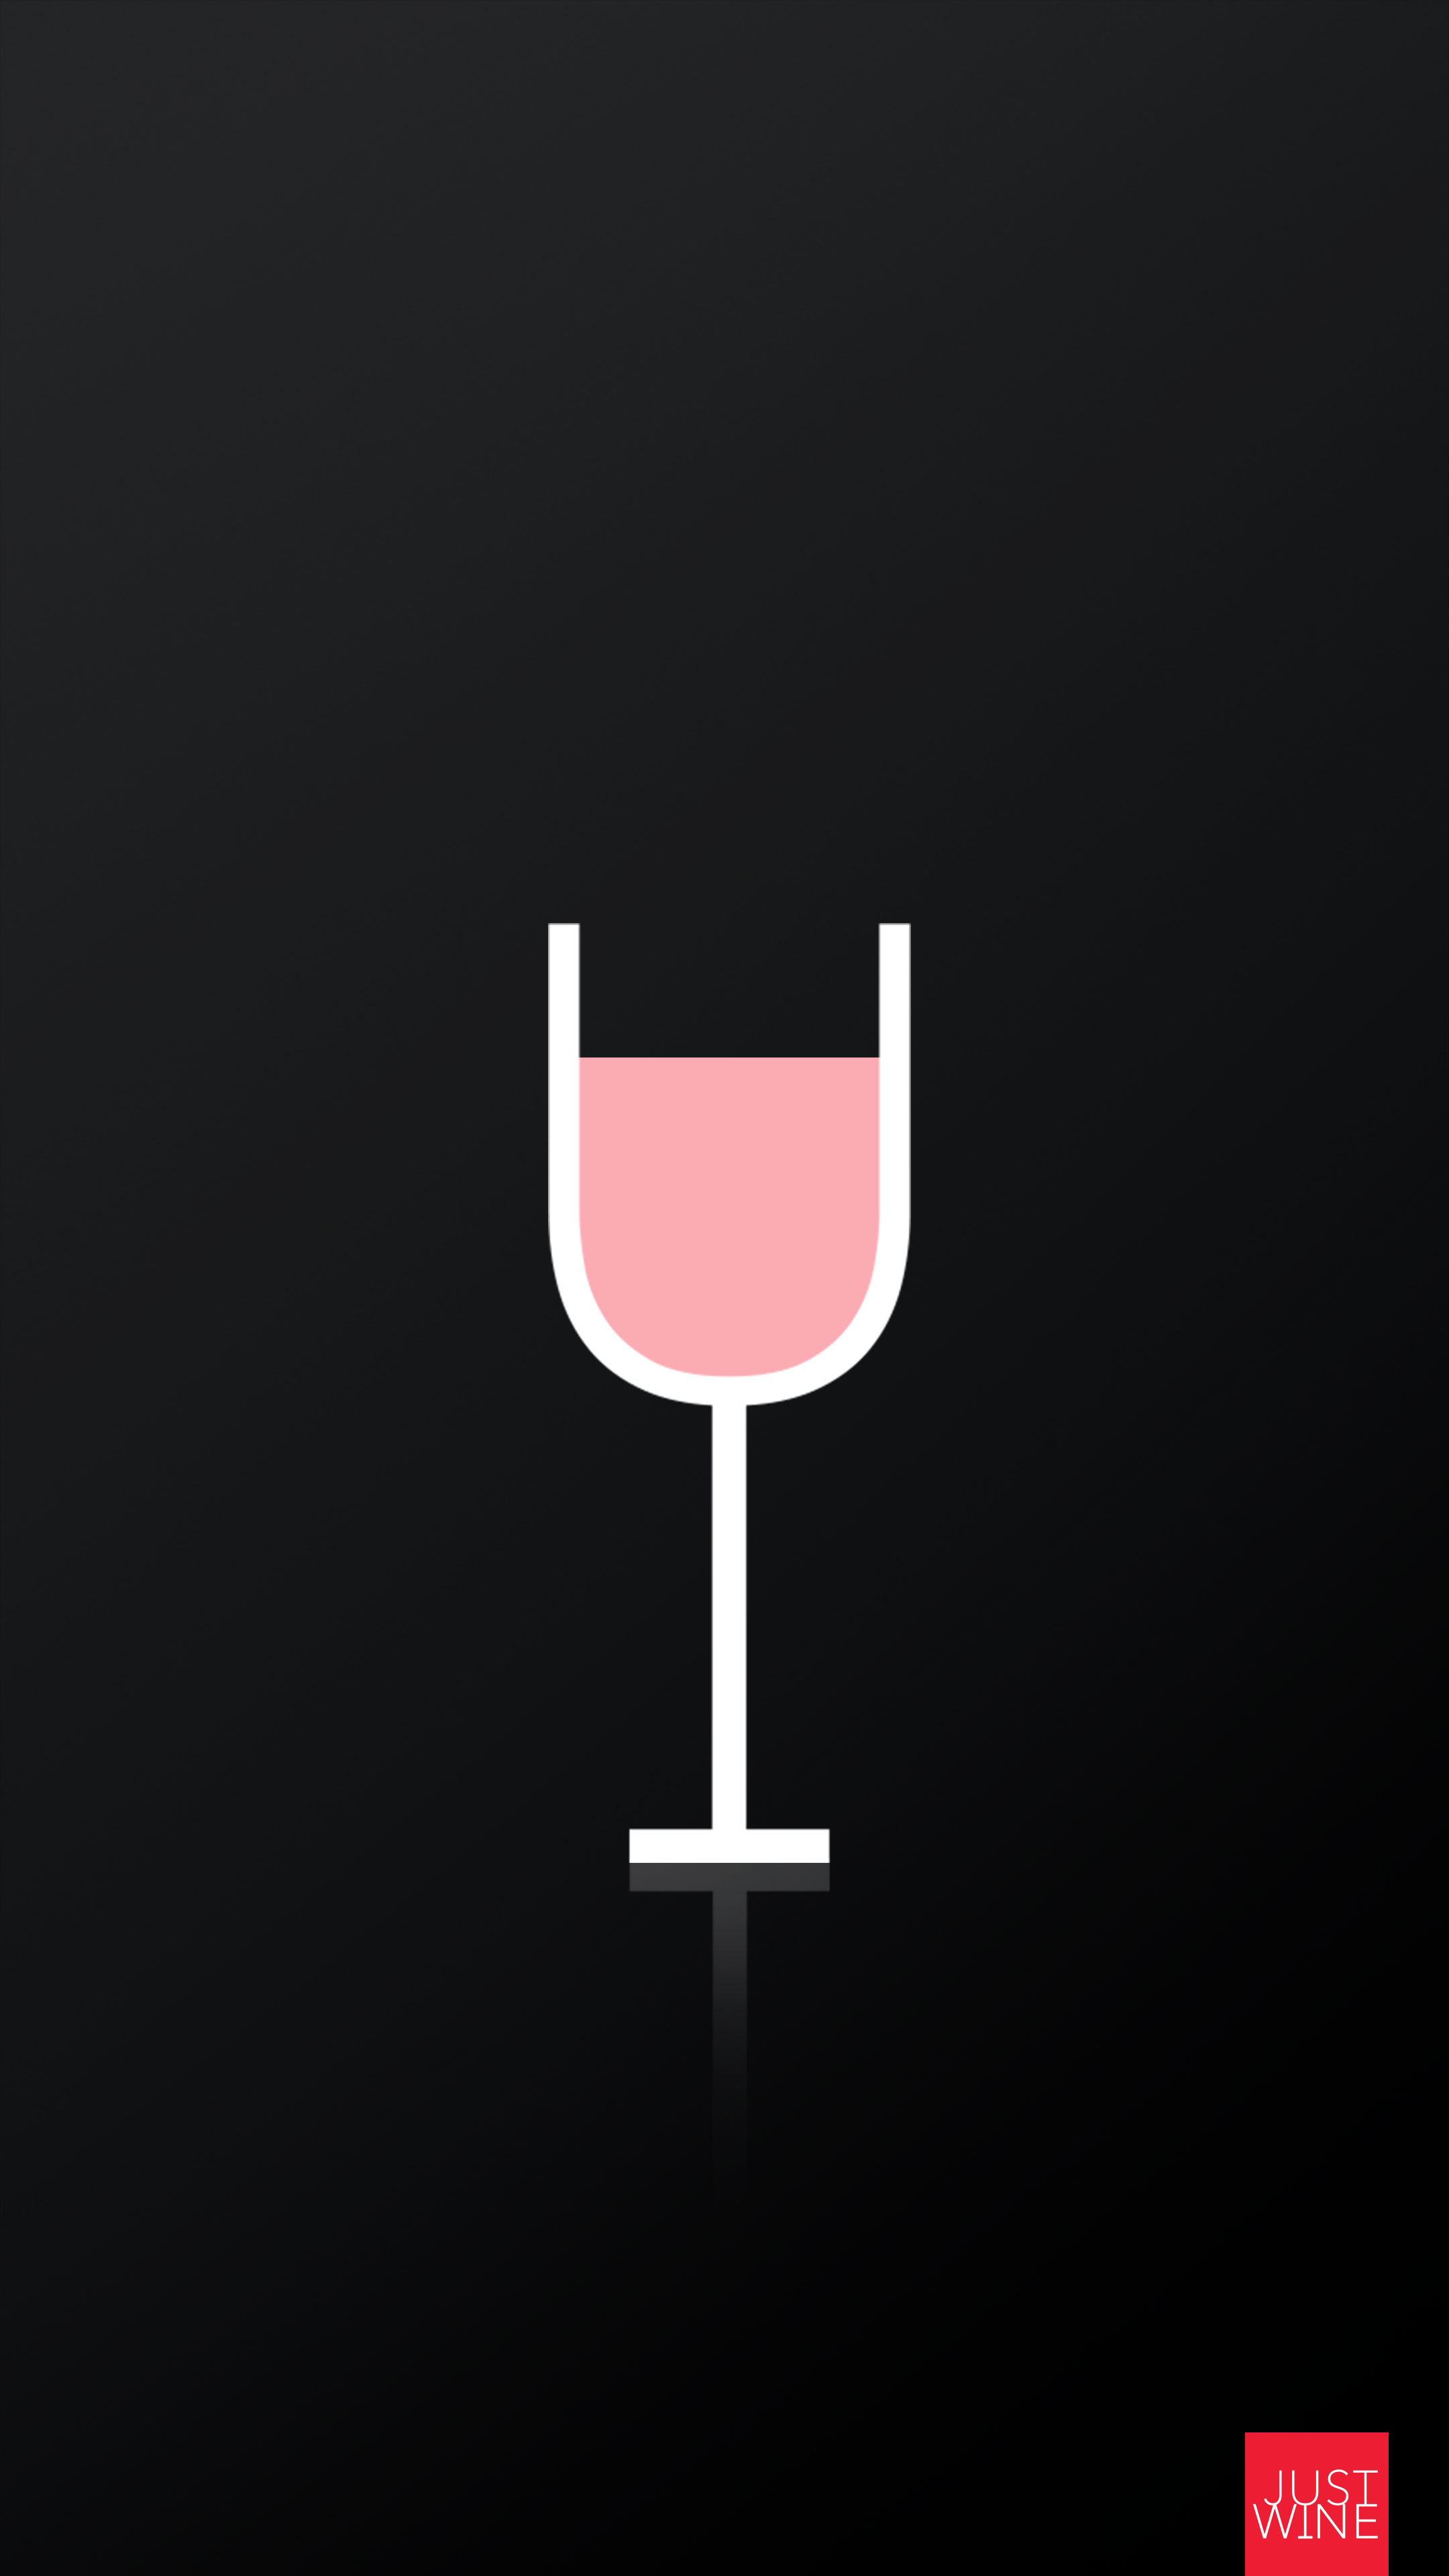 just-wine-mobile-wallpaper-background-iphone-rose